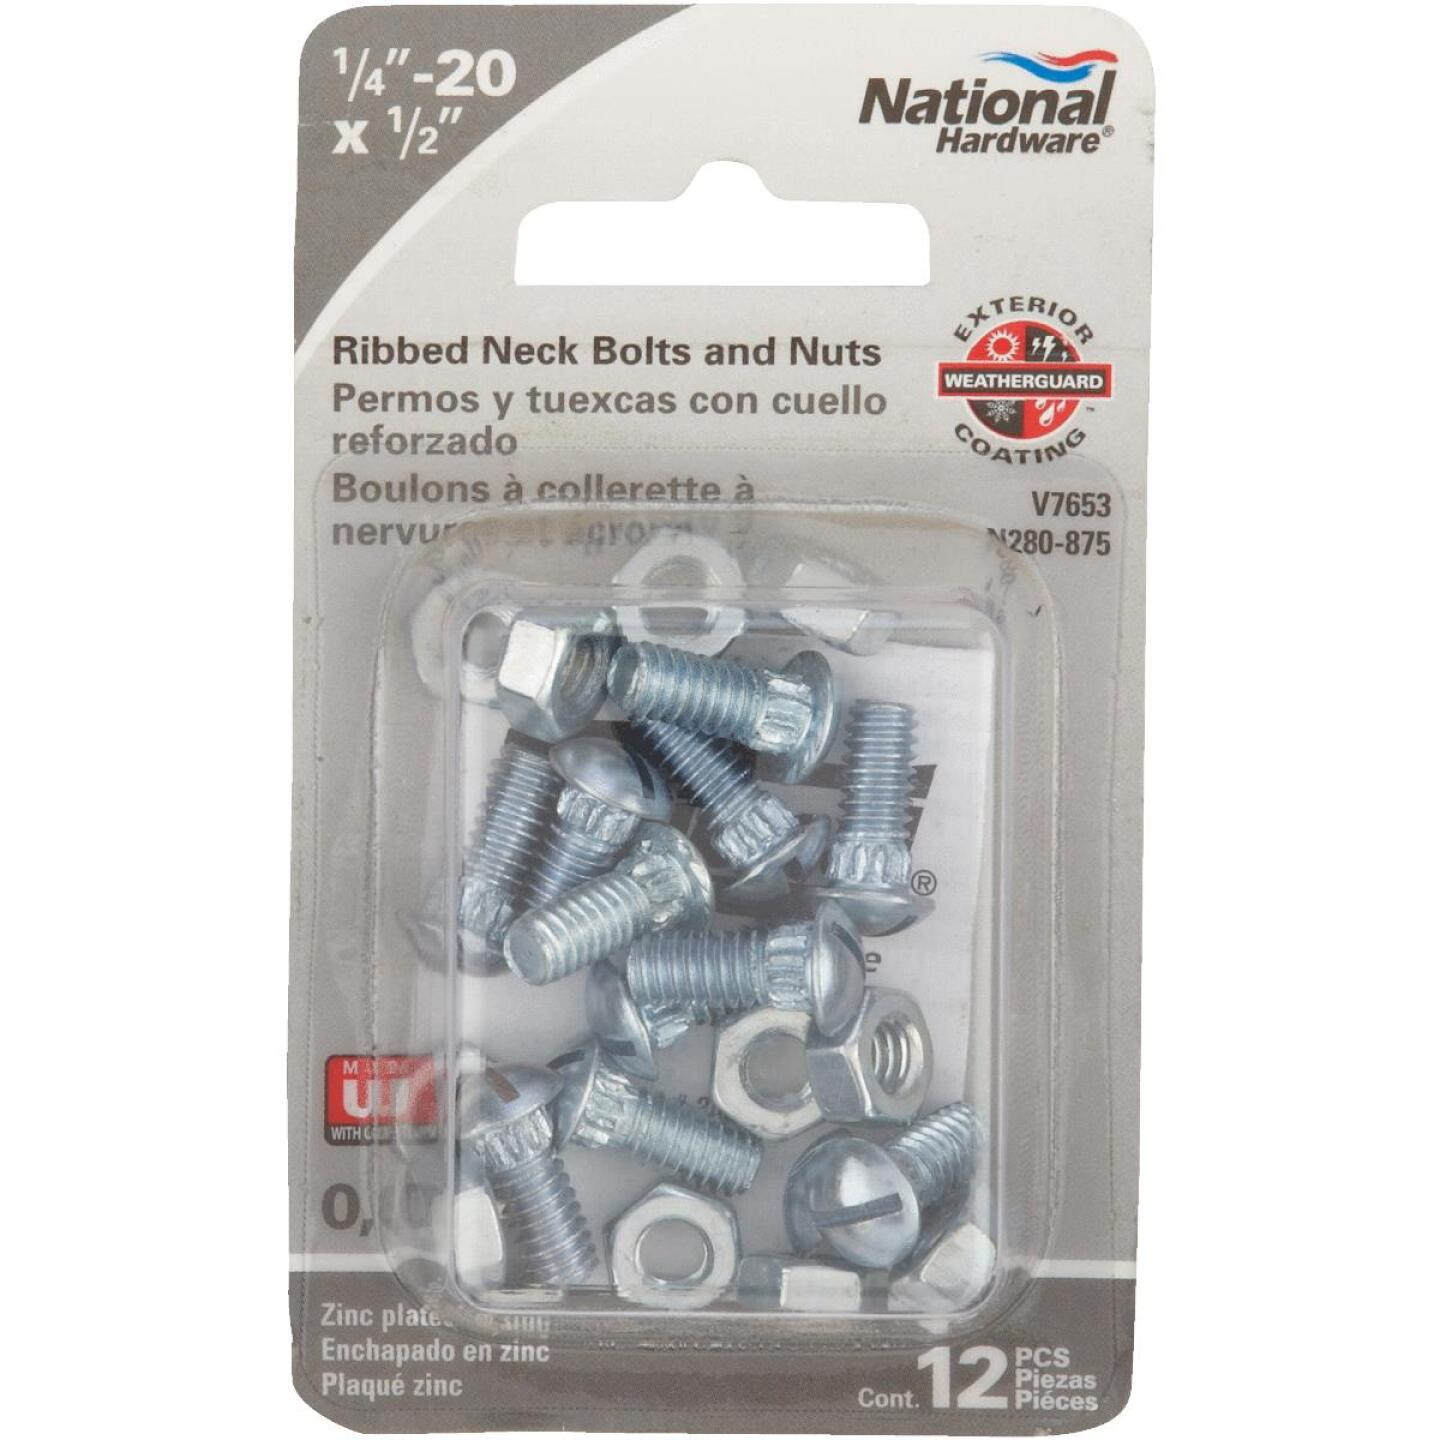 National 1/4 In. x 1/2 In. Zinc Ribbed Neck Bolt & Nut (12 Ct.) Image 2